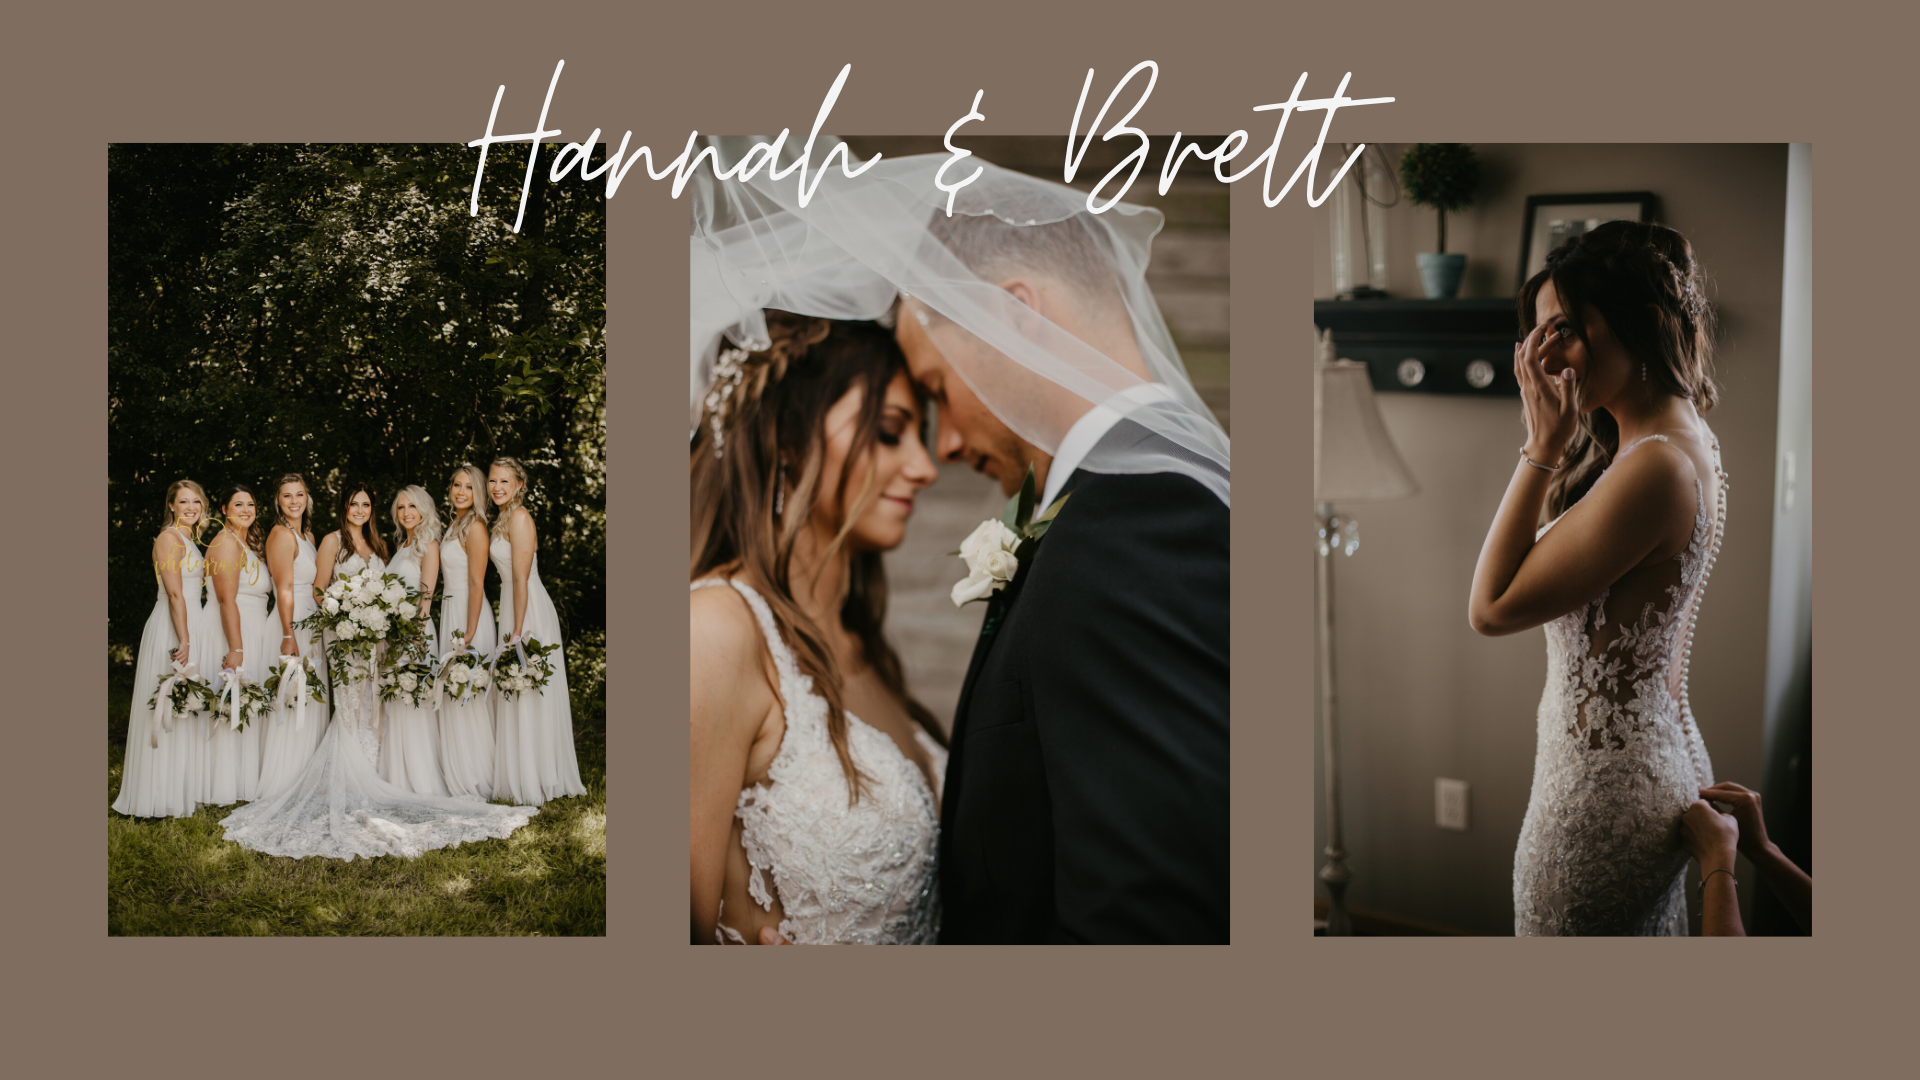 REAL WEDDING // HANNAH & BRETT